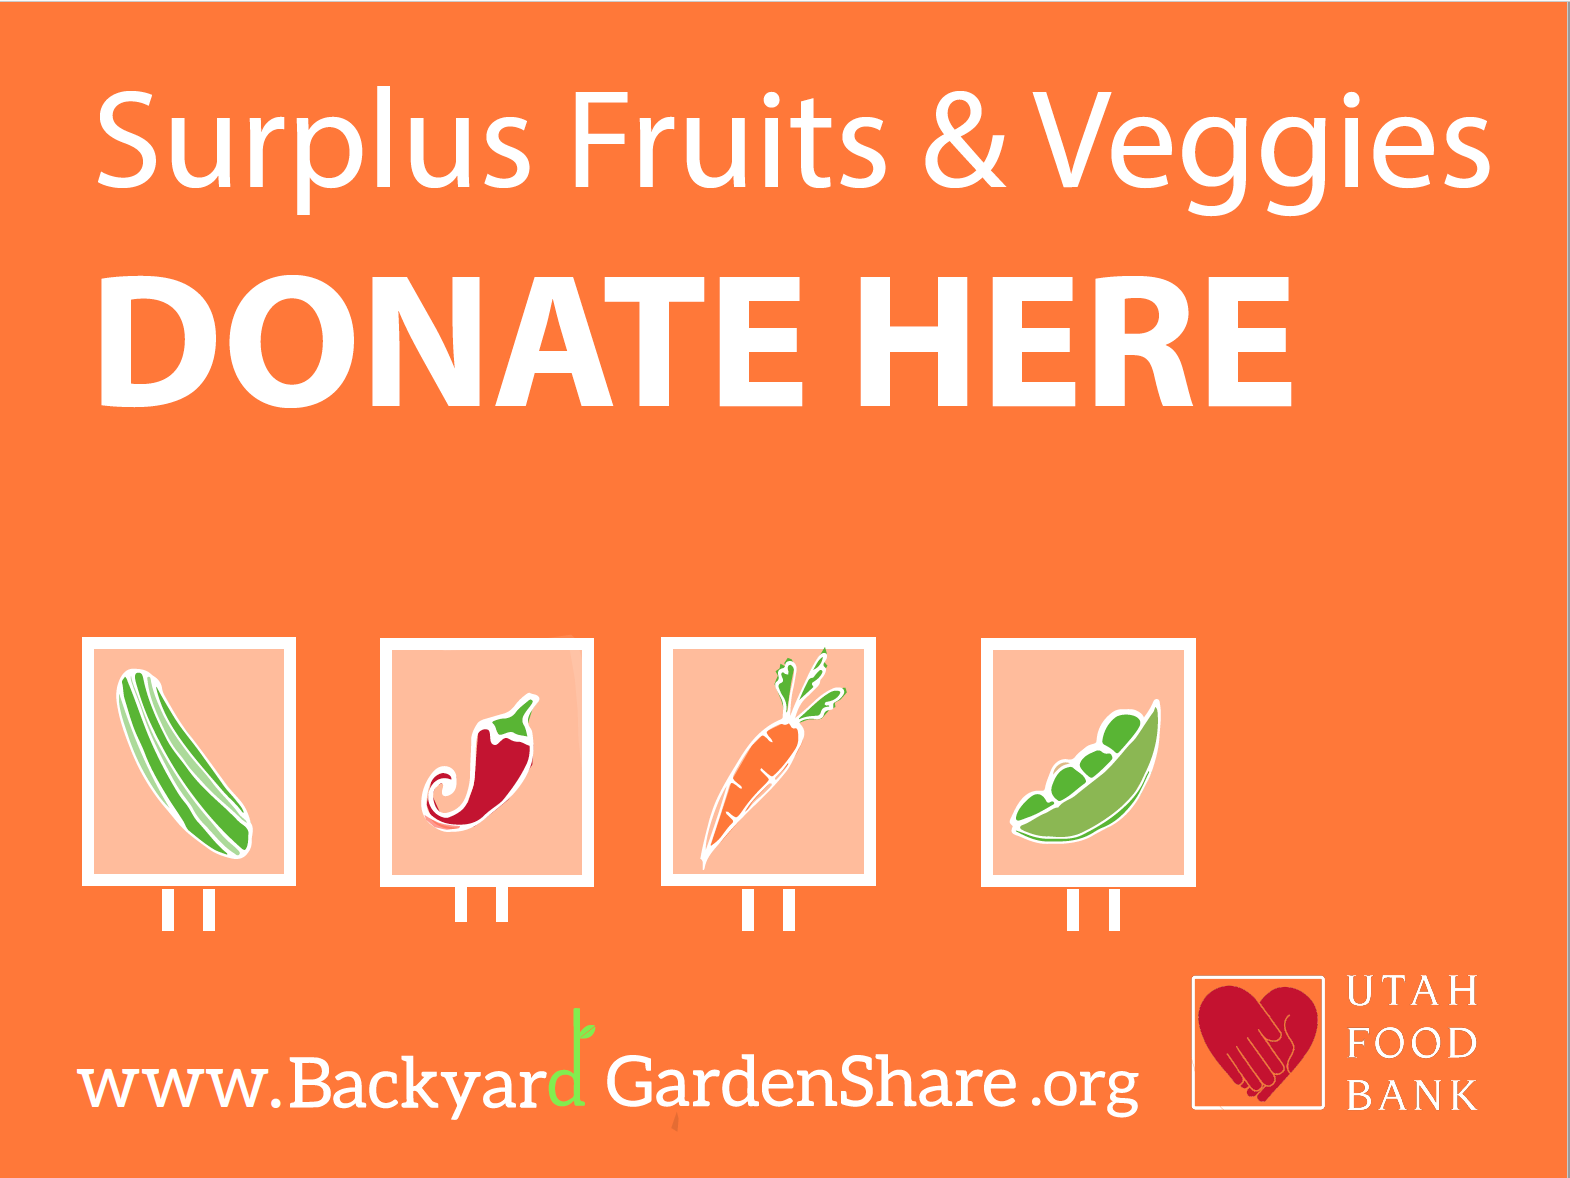 Backyard GardenShare - Donation Signs